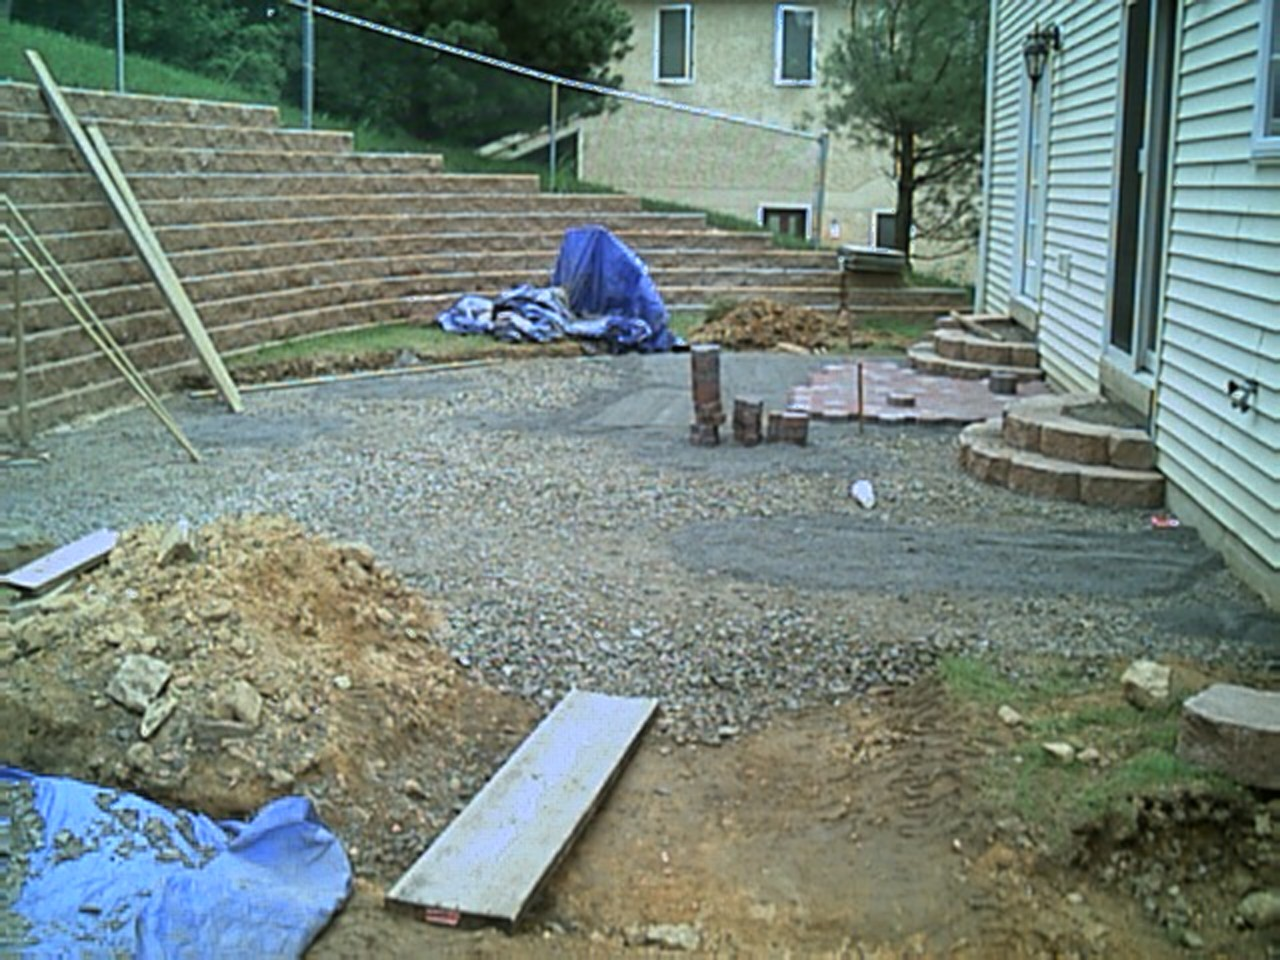 After evenly spreading stone fill, leveling it off, and making the rounded steps we started the pavers.